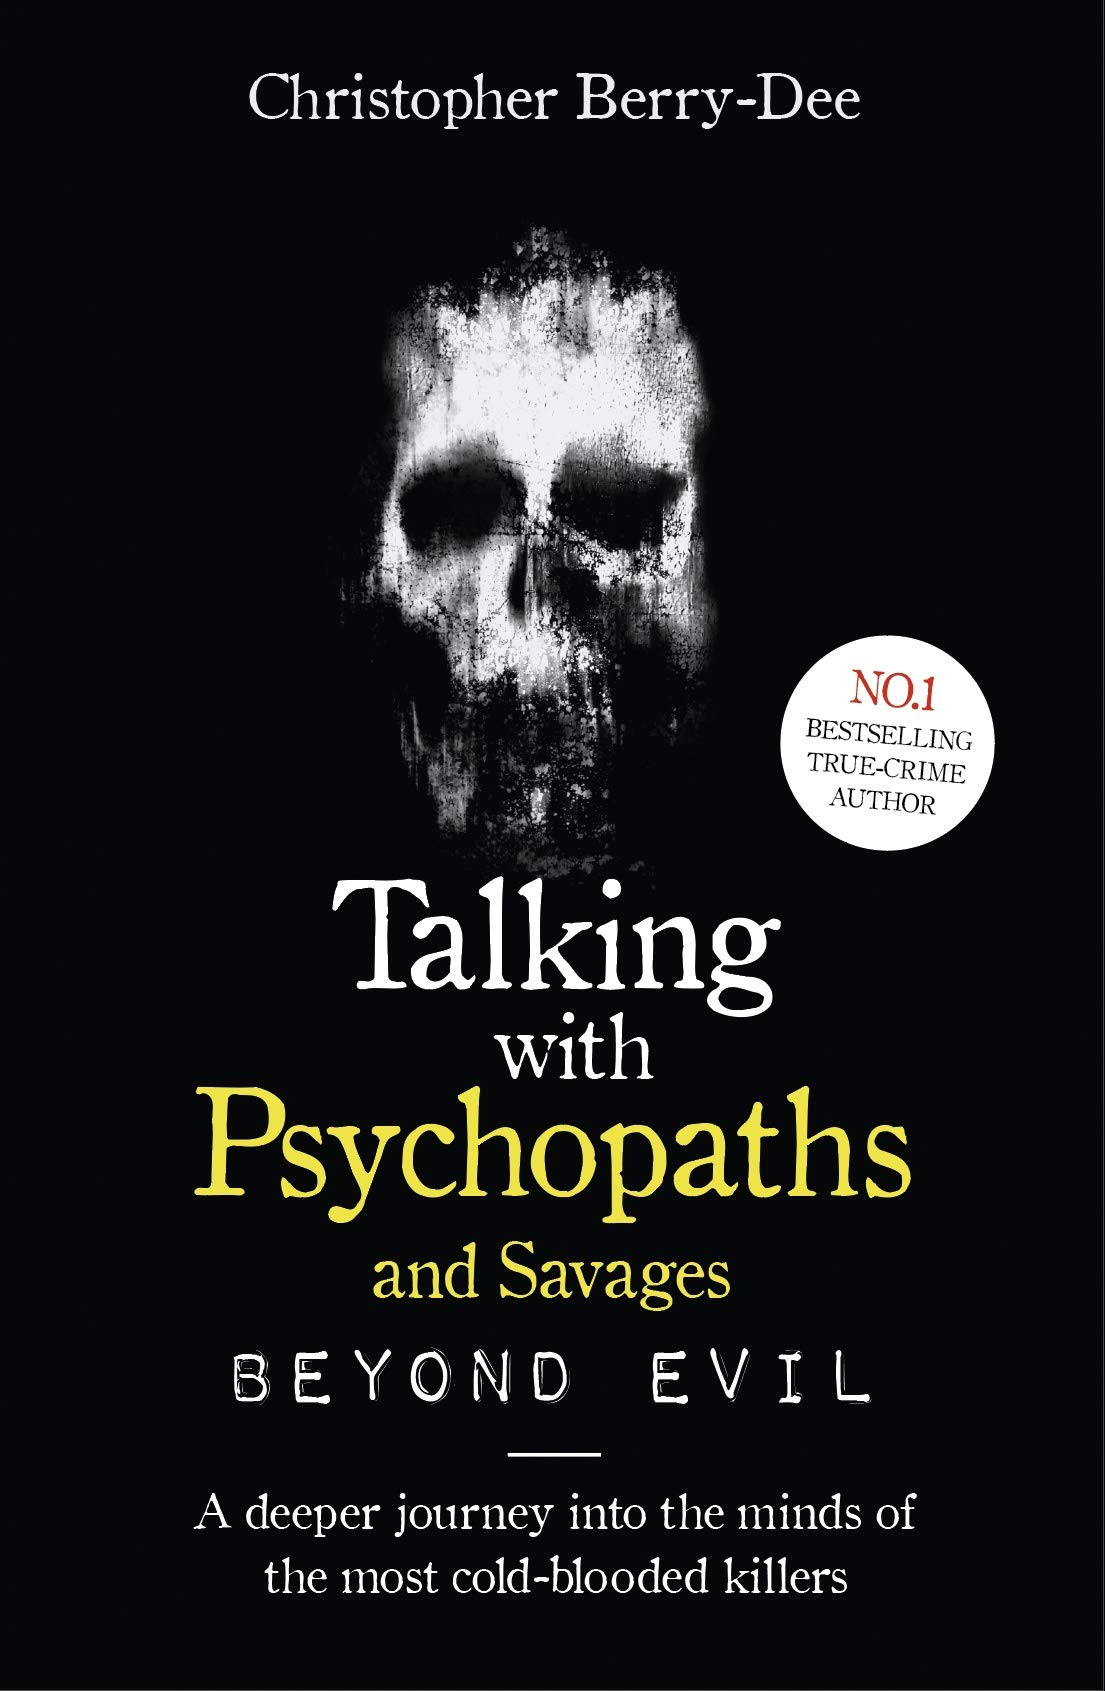 Talking with Psychopaths and Savages - Beyond Evil: A deeper journey into the minds of the most cold-blooded killers